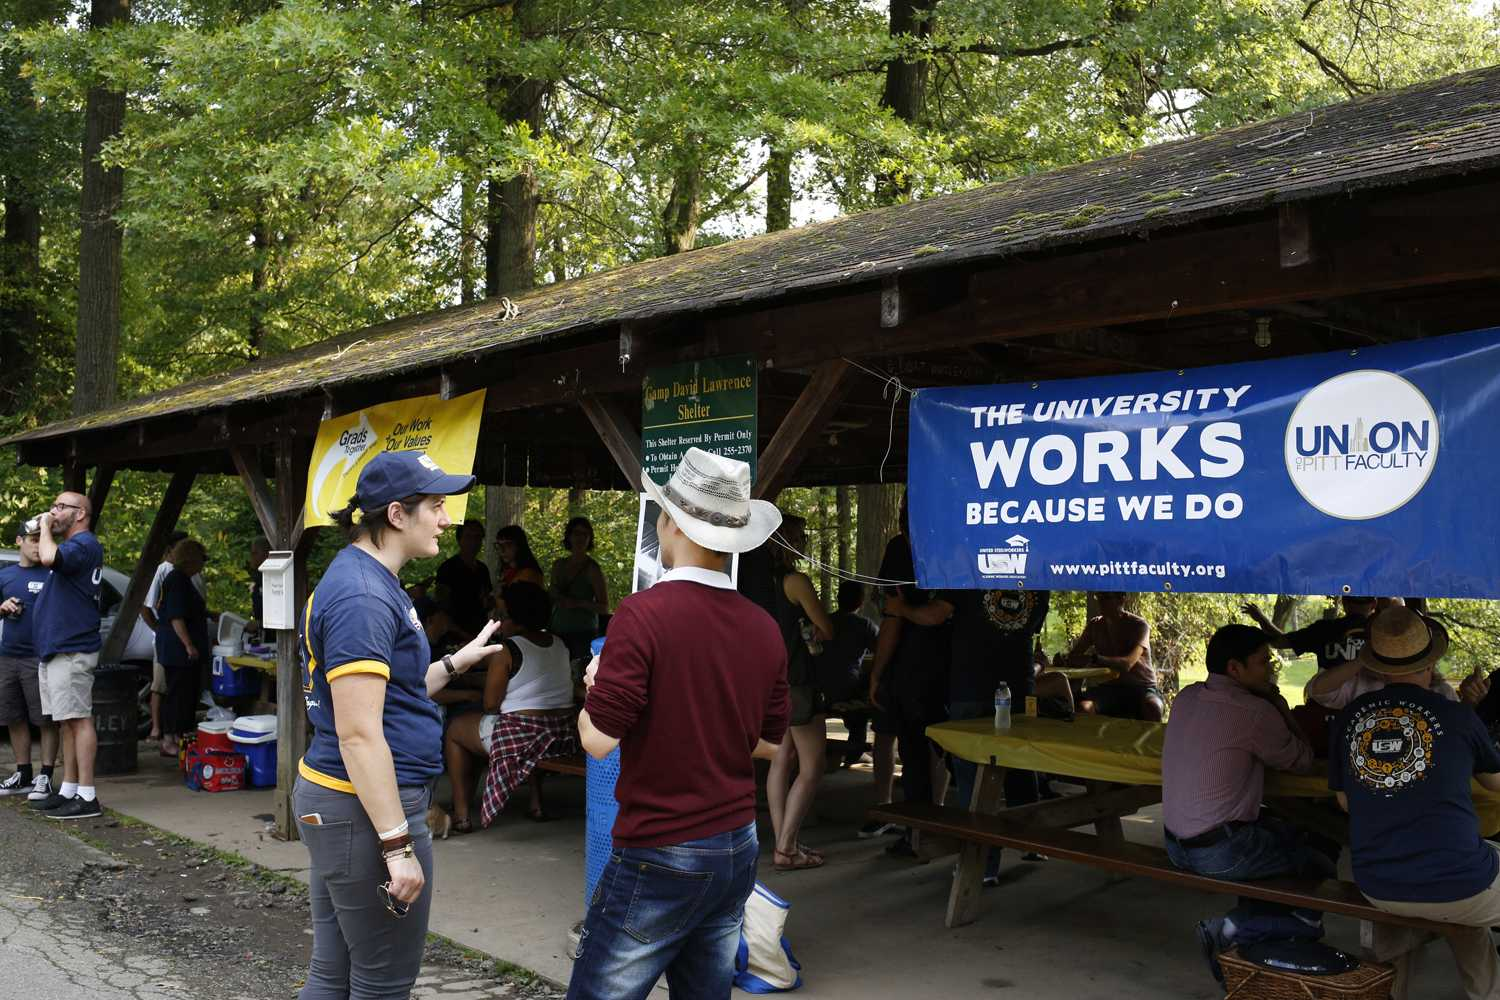 Union supporters and organizers cook out at Camp David Lawrence. (Photo by Thomas Yang | Staff Photographer)